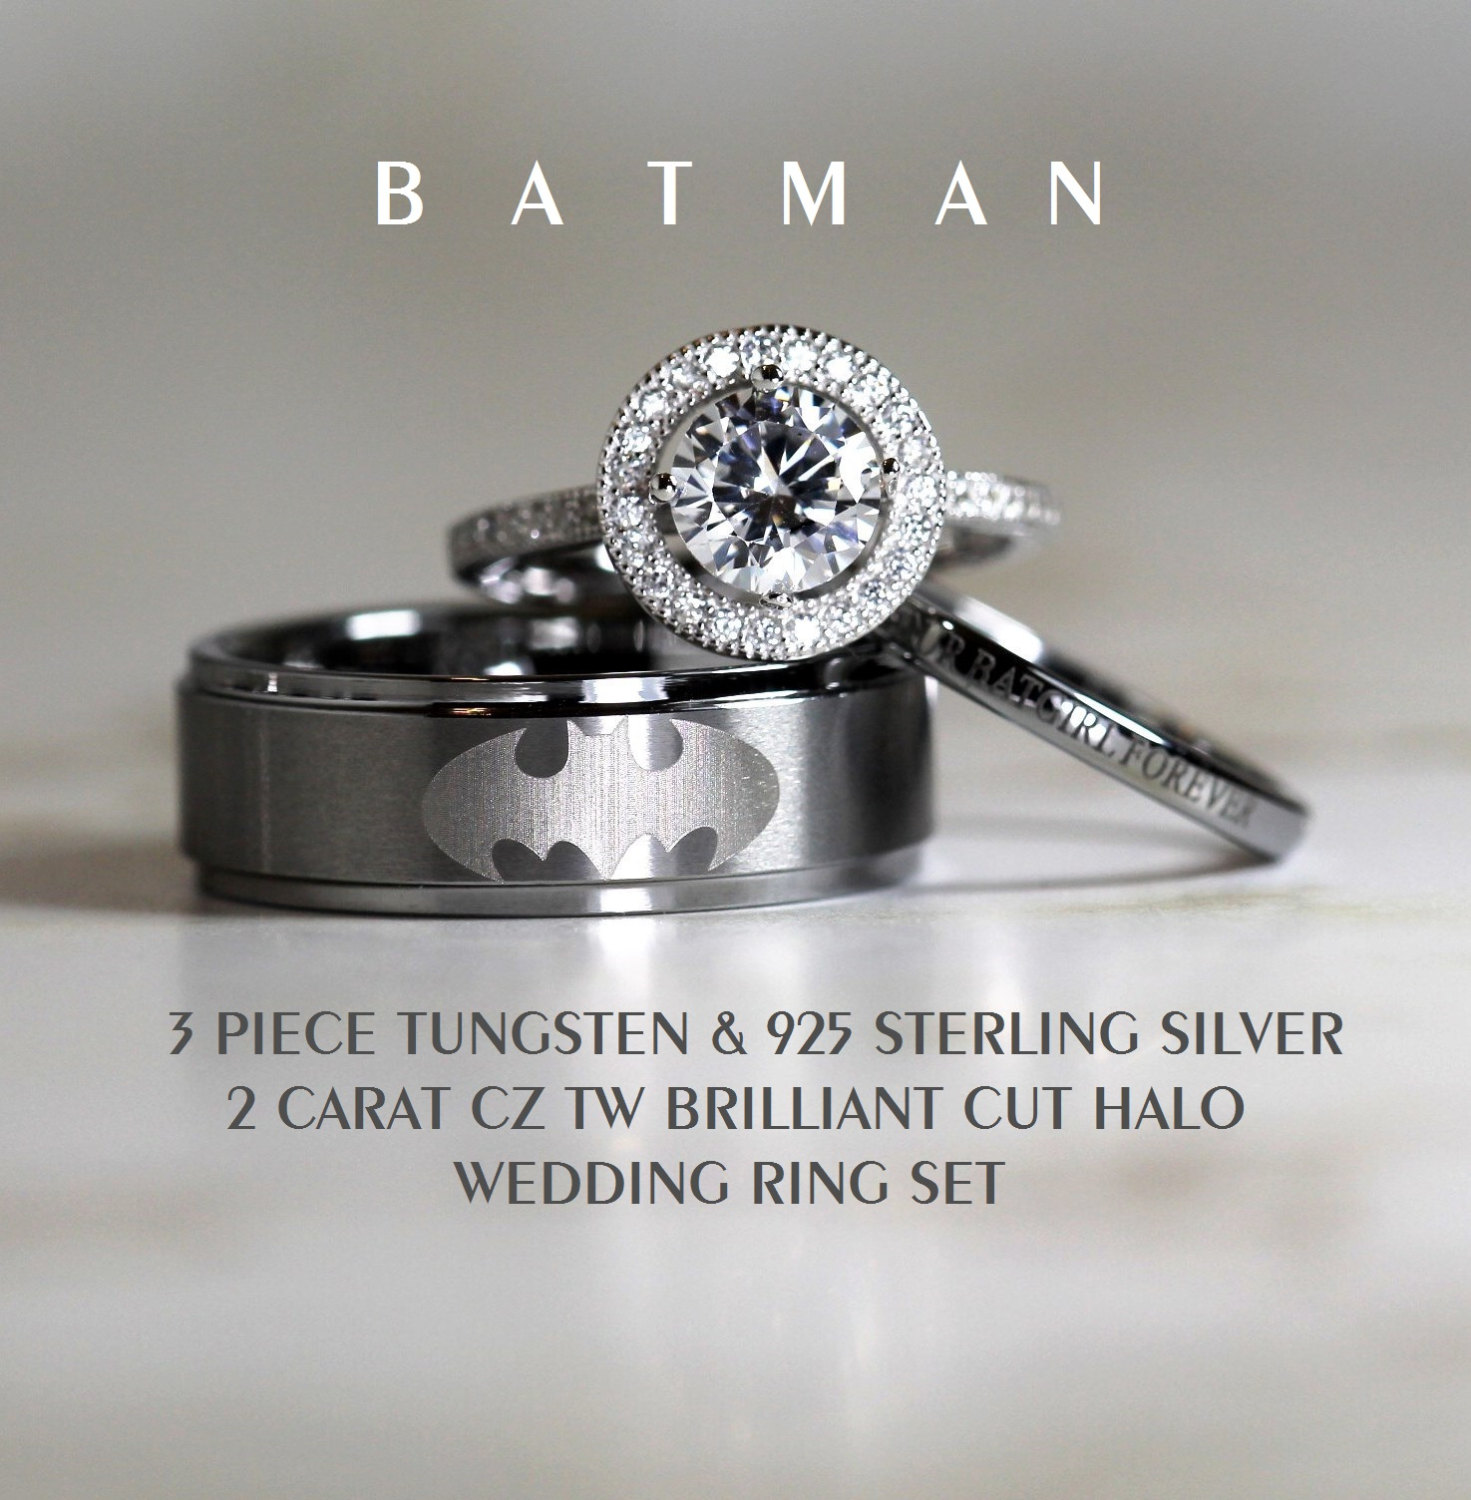 Batman Tungsten And 925 Sterling Silver 2 Carat Cz Wedding